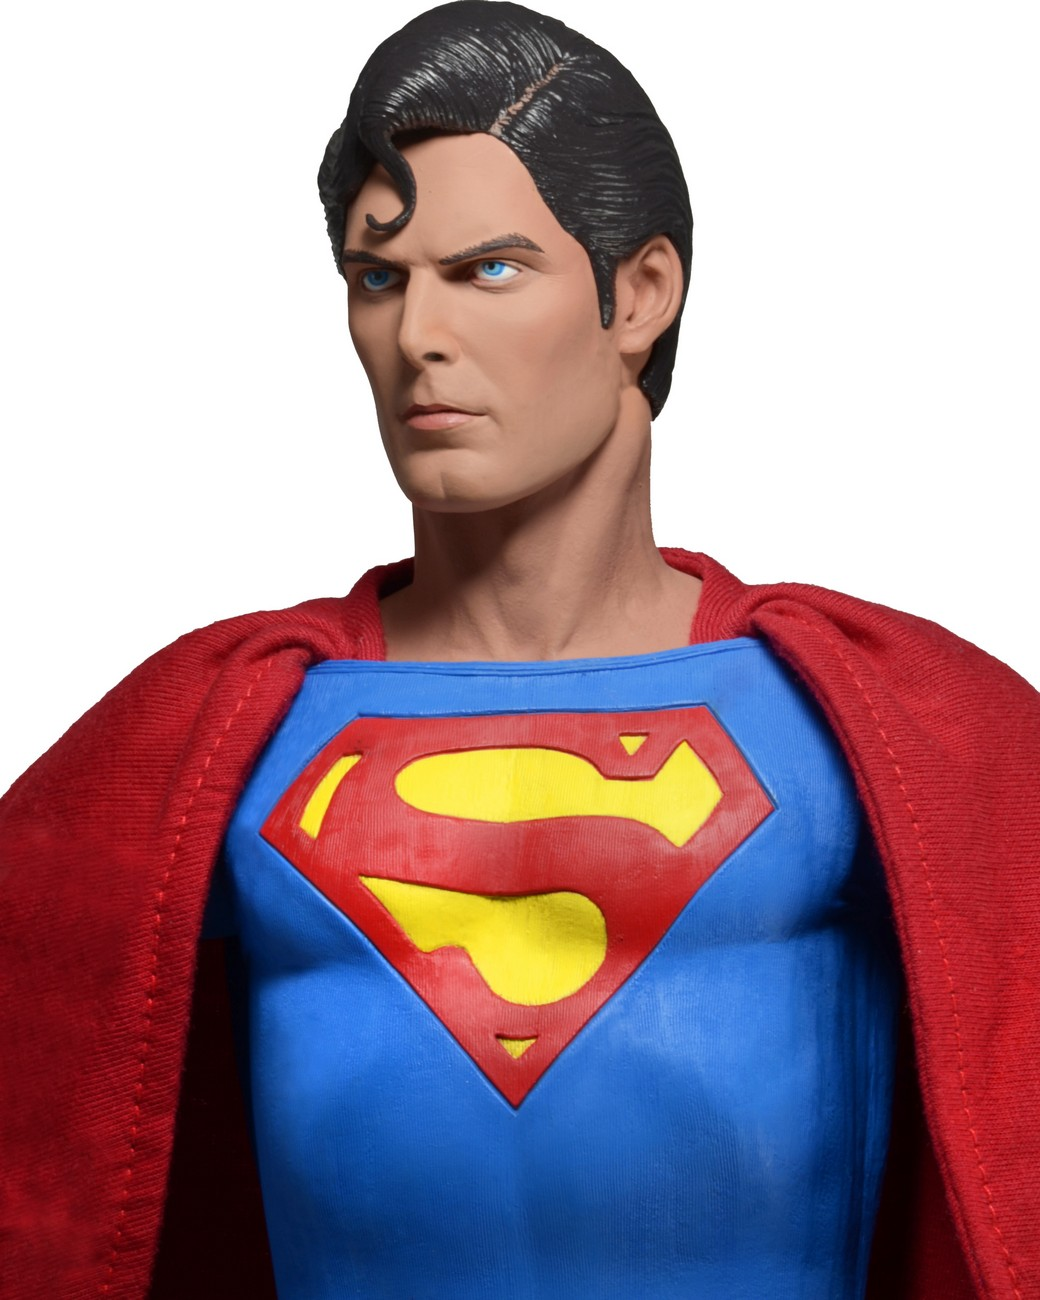 http://news.toyark.com/wp-content/uploads/sites/4/2015/06/Christopher-Reeve-18-Inch-Superman-by-NECA-006.jpg